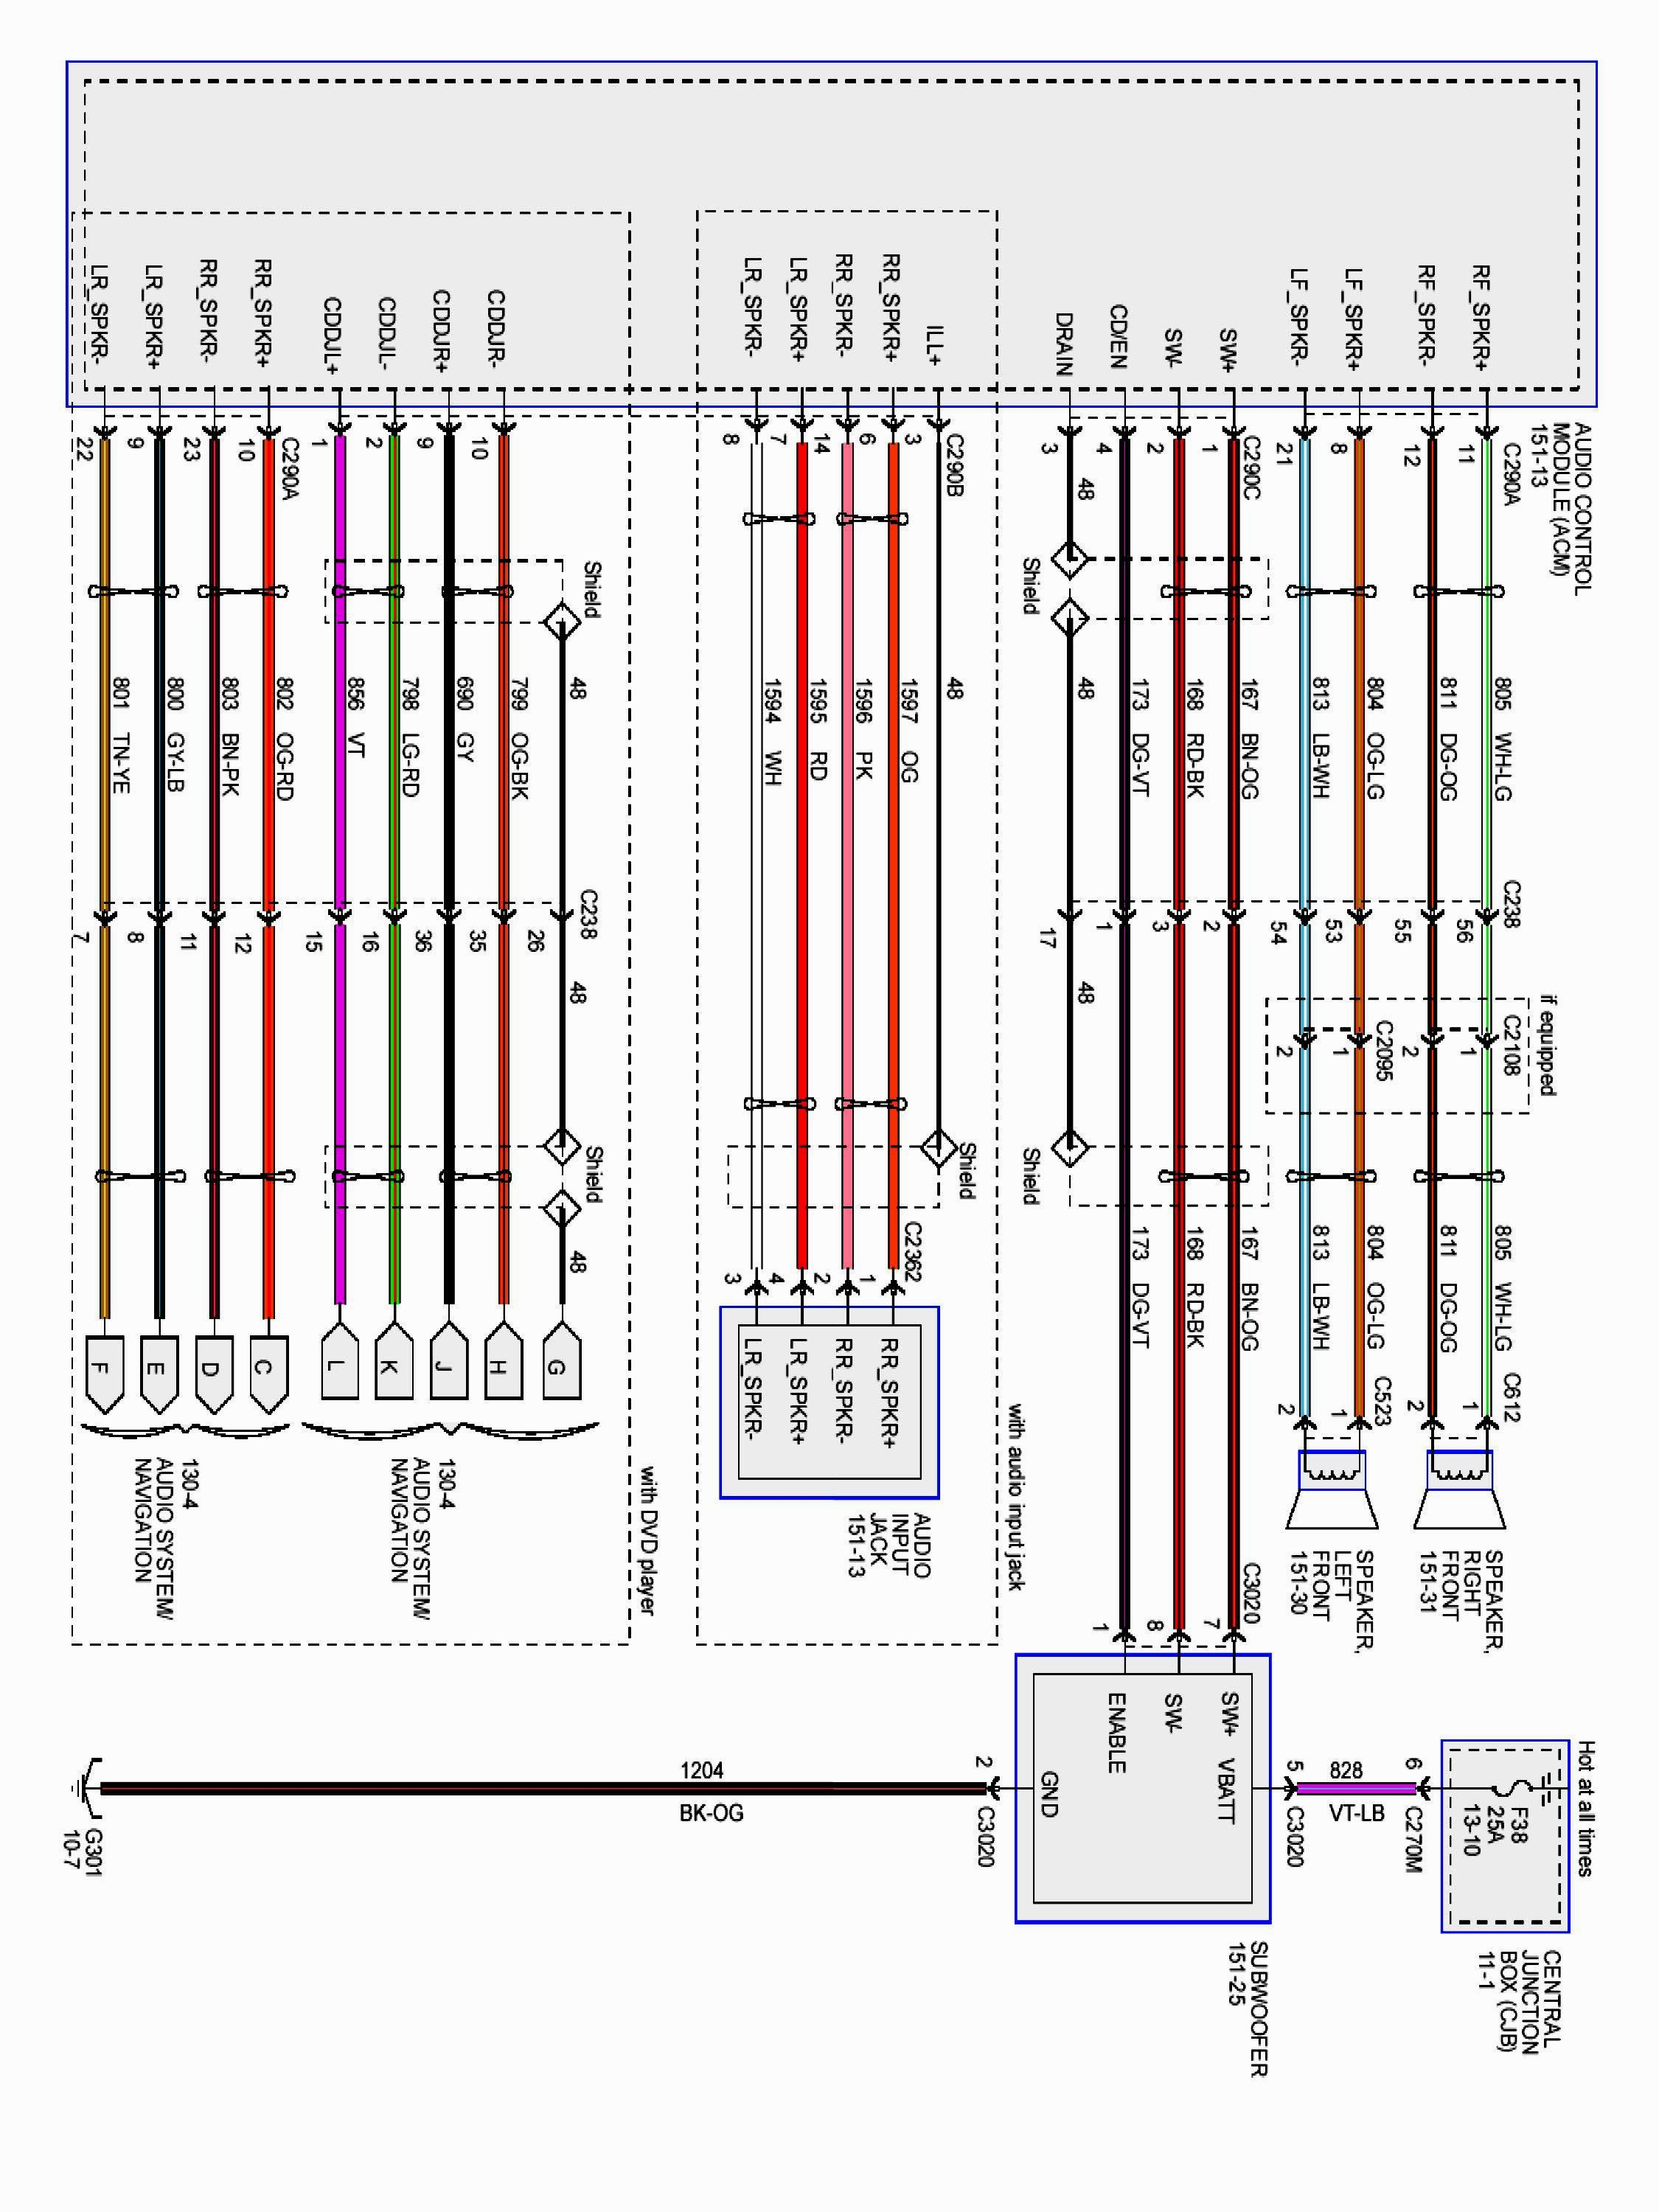 Factory Wiring Diagrams Car Audio ford Factory Wiring Colors Wiring Diagram Paper Of Factory Wiring Diagrams Car Audio